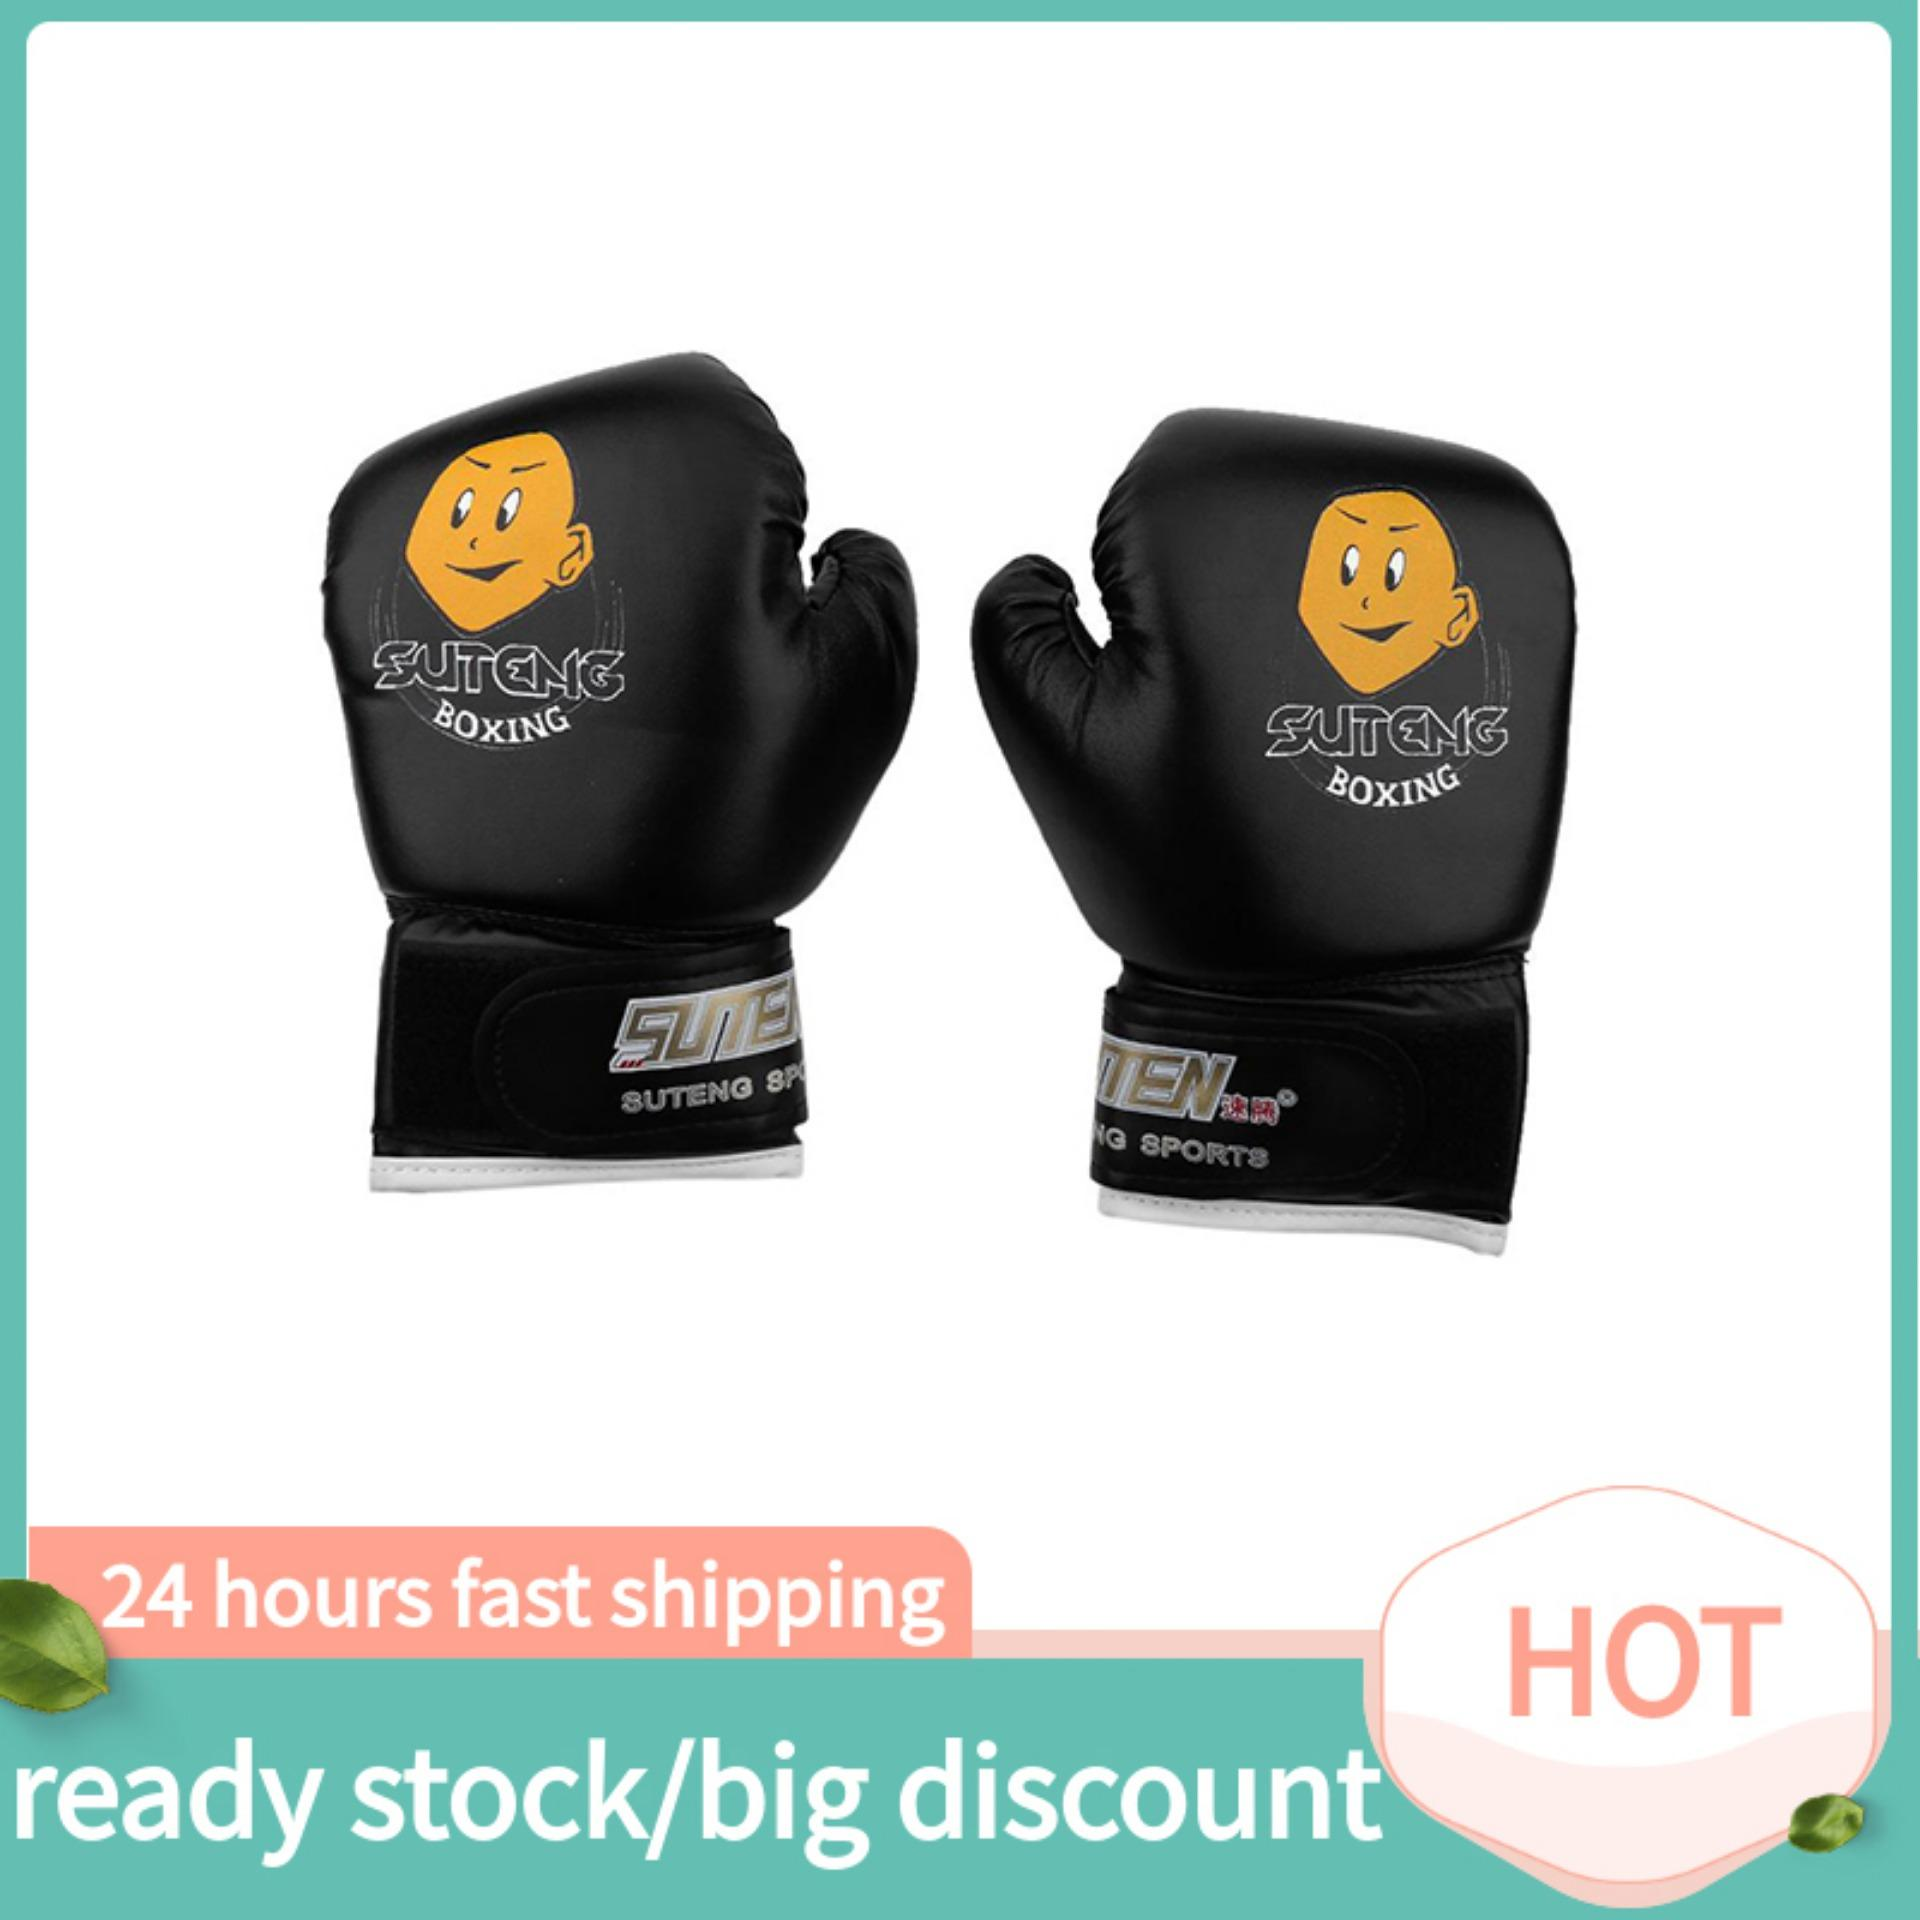 joliannh【biggest discount+lowest price】3Colors Child Boxing Fighting Muay Thai Sparring Punching Kickboxing Grappling Sandbag Gloves